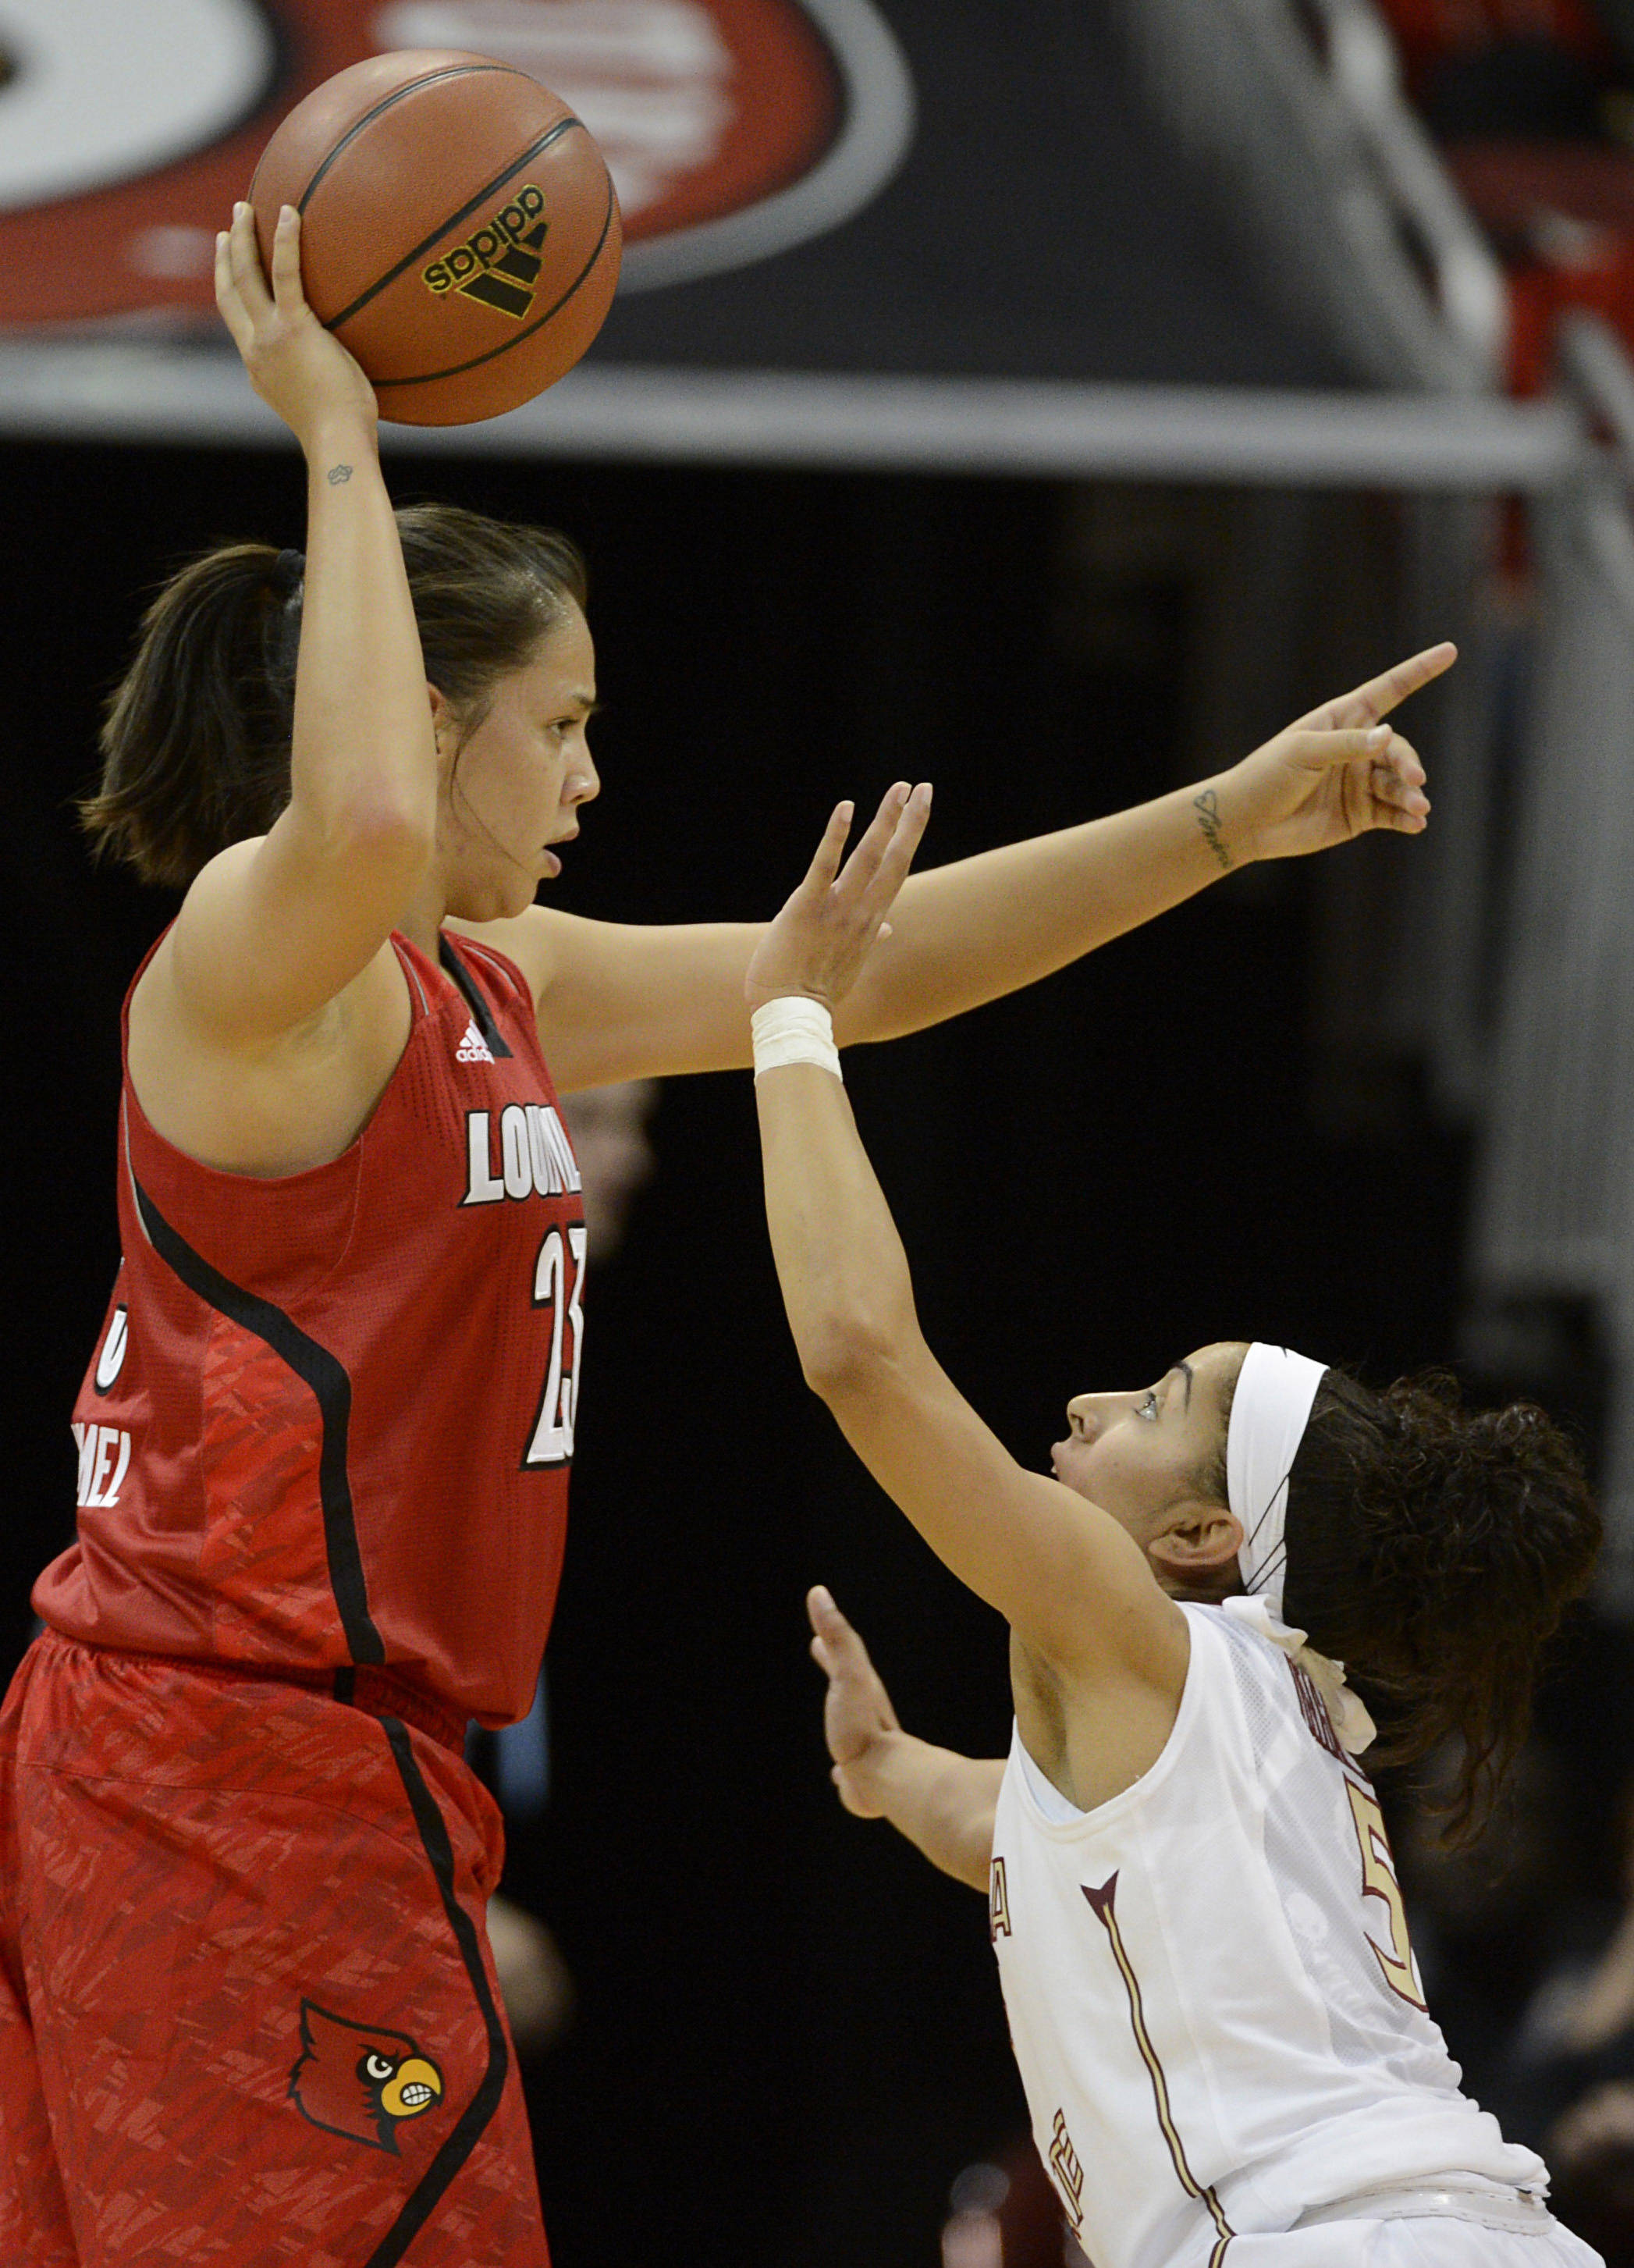 Nov 24, 2013; Louisville, KY, USA; Louisville Cardinals guard Shoni Schimmel (23) calls a play under the pressure of Florida State Seminoles guard Cheetah Delgado (5) during the first half at KFC YUM! Center. Mandatory Credit: Jamie Rhodes-USA TODAY Sports